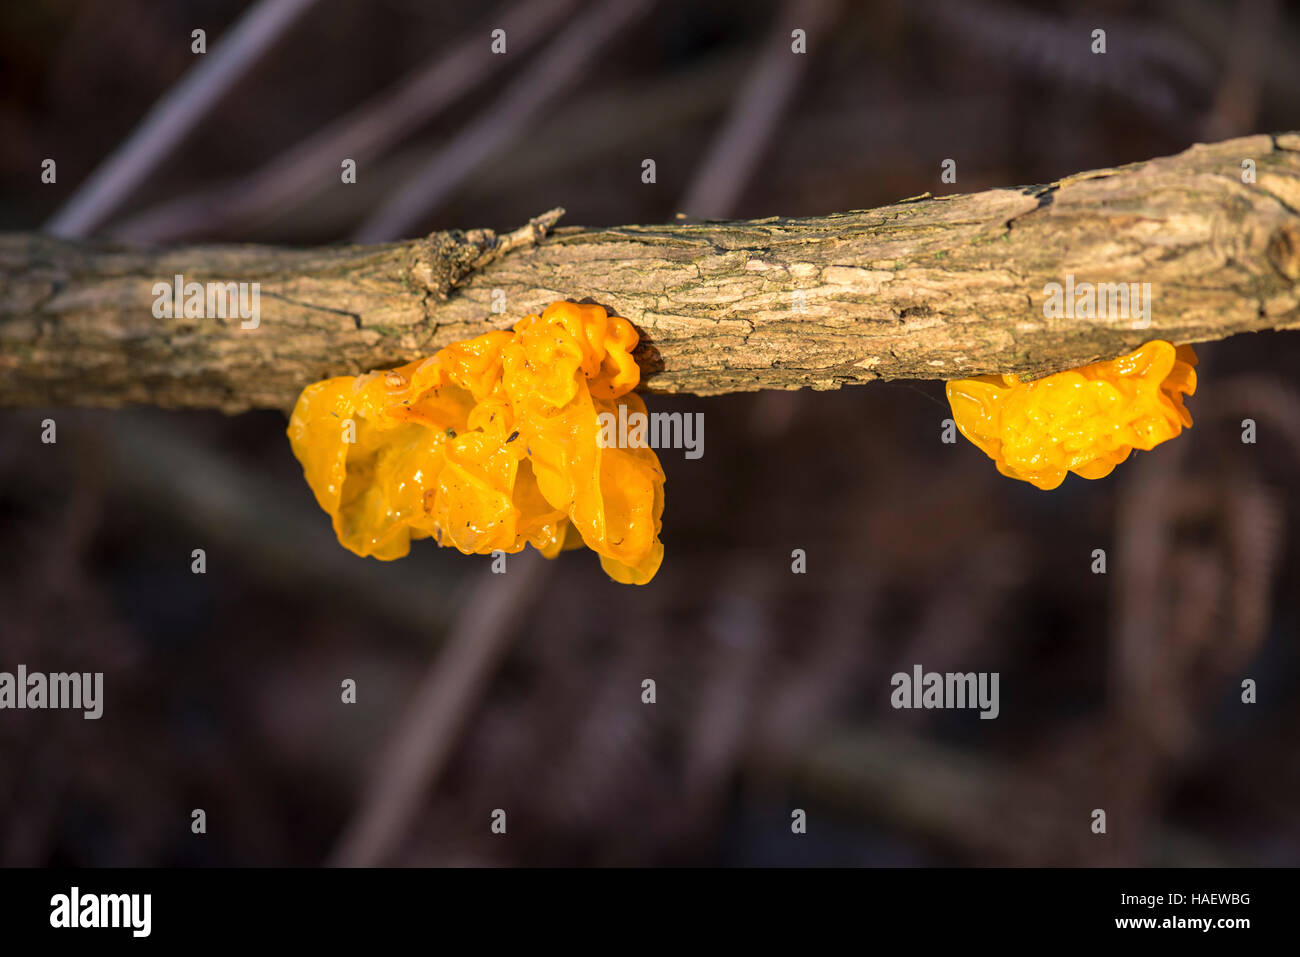 The fungus Tremella mesenterica has several common names including yellow brain fungus, jelly brain fungus and witche's - Stock Image